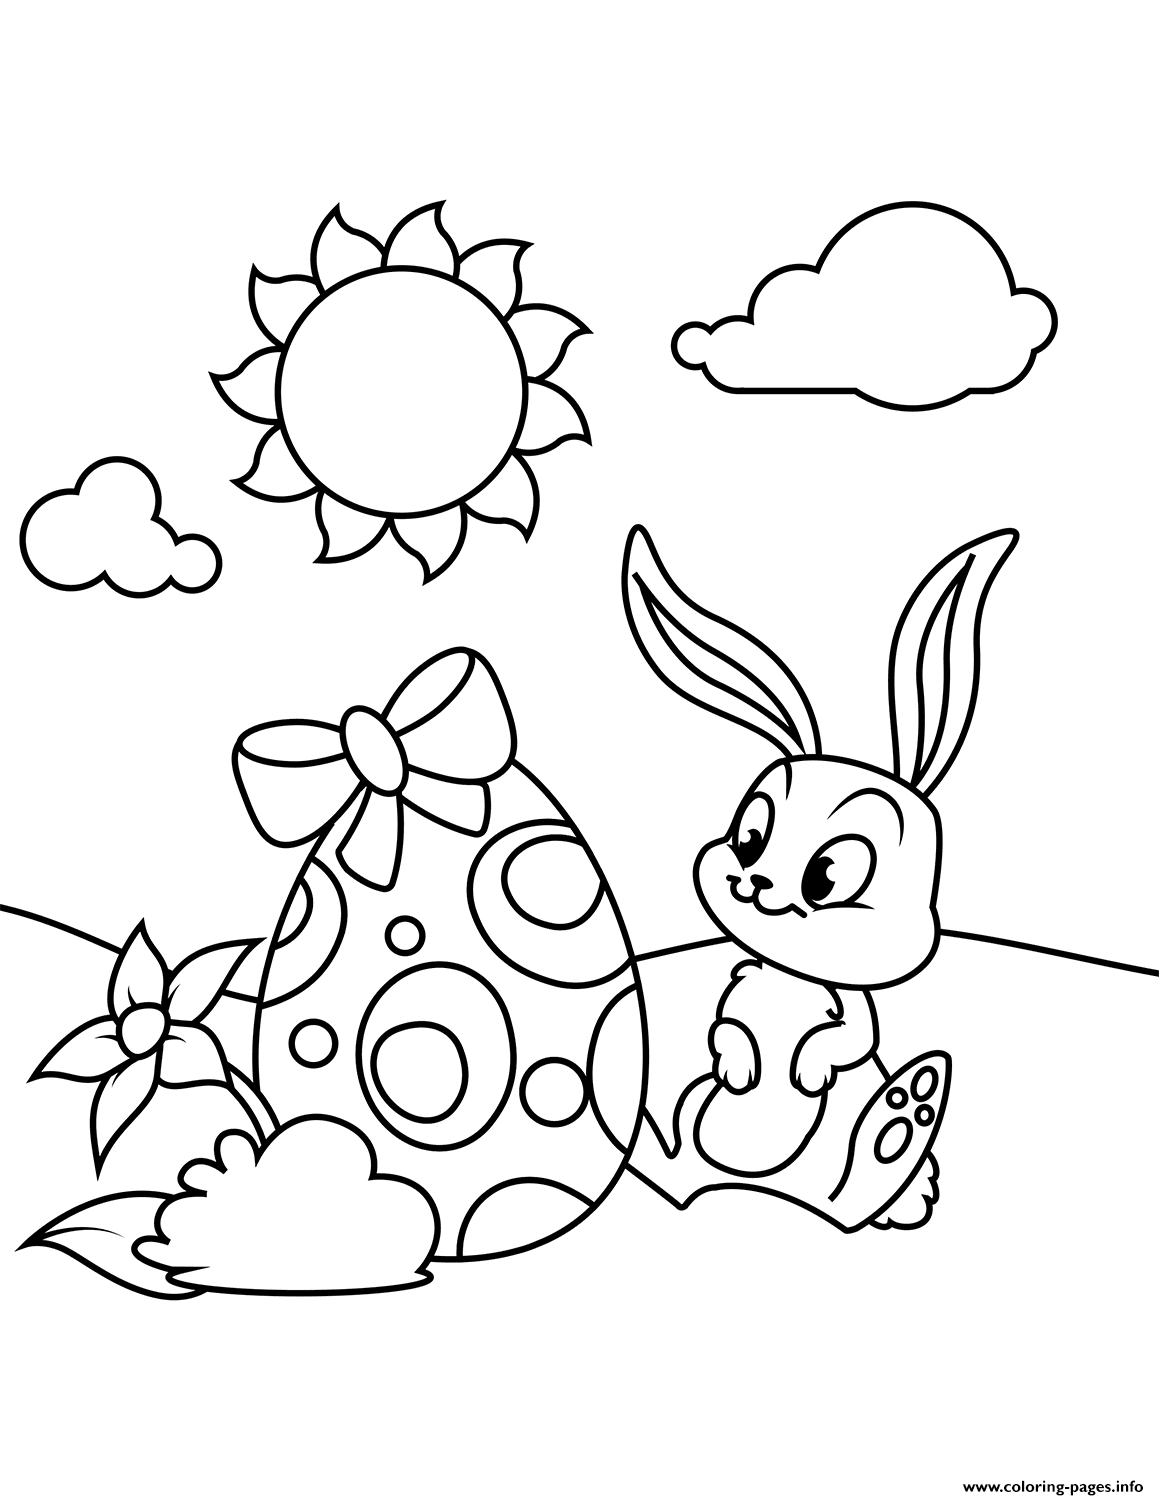 Cute Bunny And Easter Egg Coloring Pages Printable